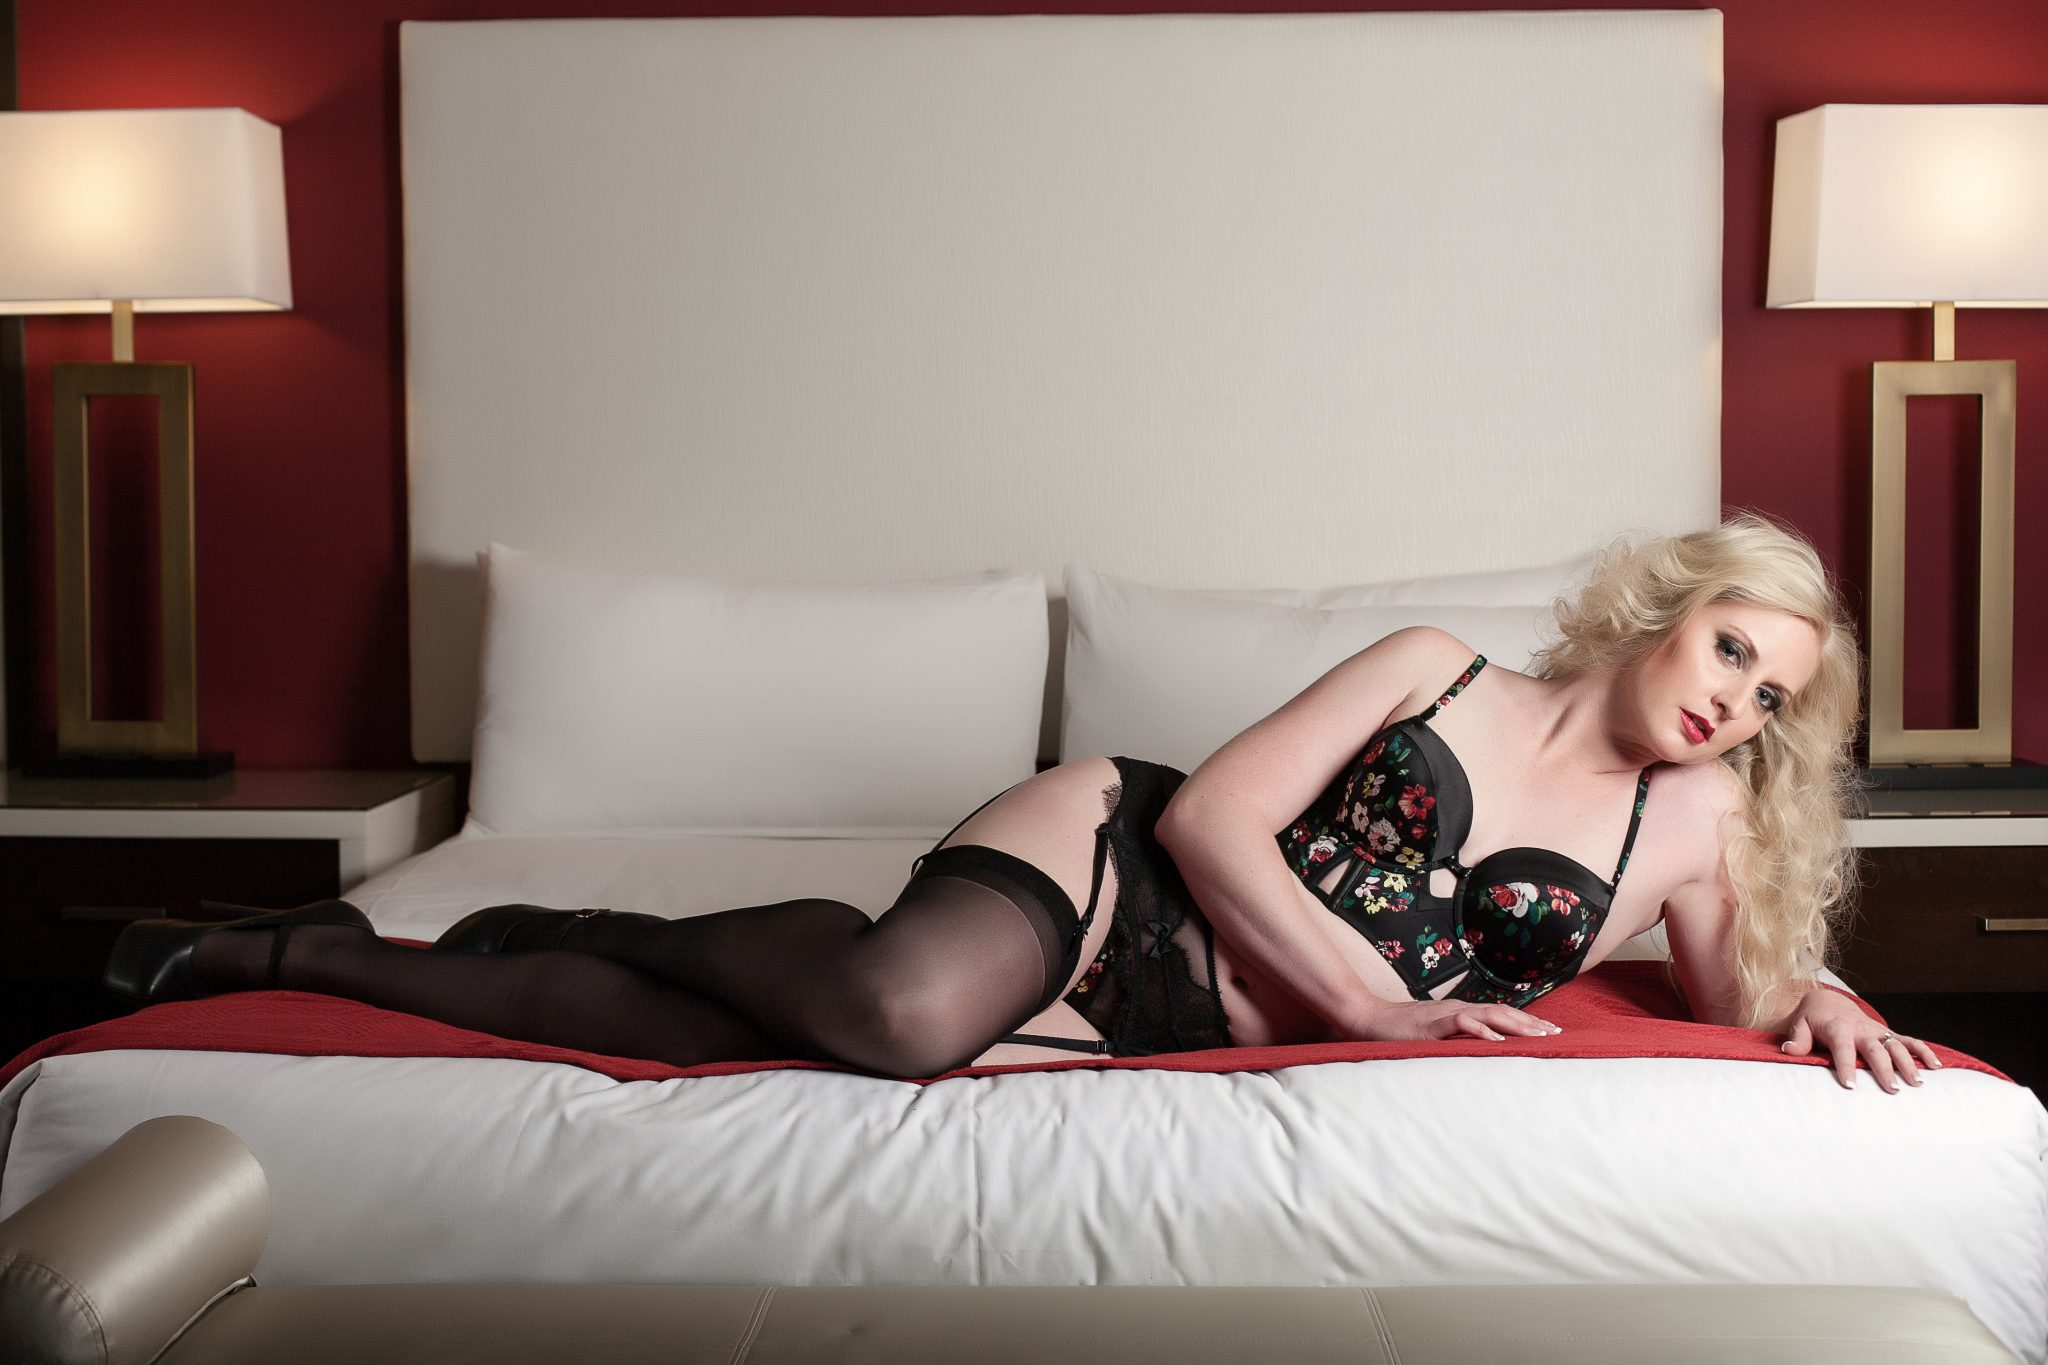 intimate portraiture in red lingerie.